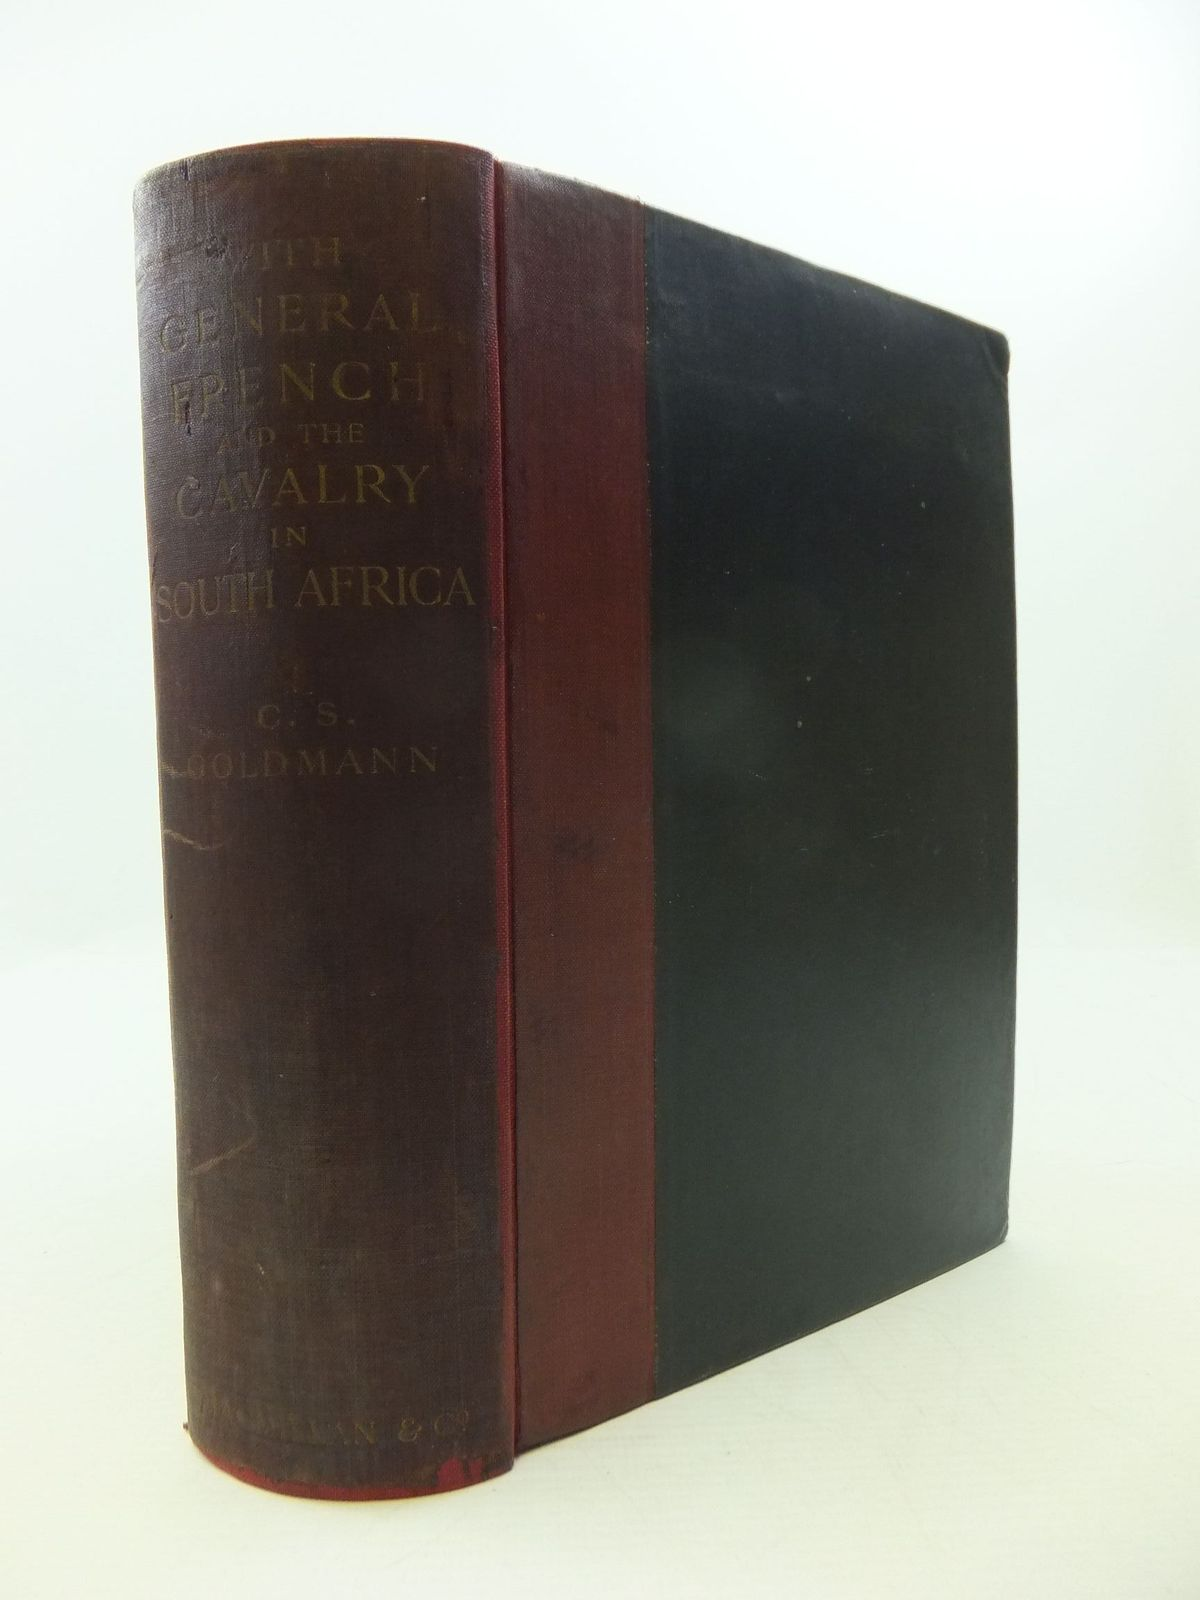 Photo of WITH GENERAL FRENCH AND THE CAVALRY IN SOUTH AFRICA written by Goldmann, Charles Sydney published by Macmillan & Co. Ltd. (STOCK CODE: 2111576)  for sale by Stella & Rose's Books